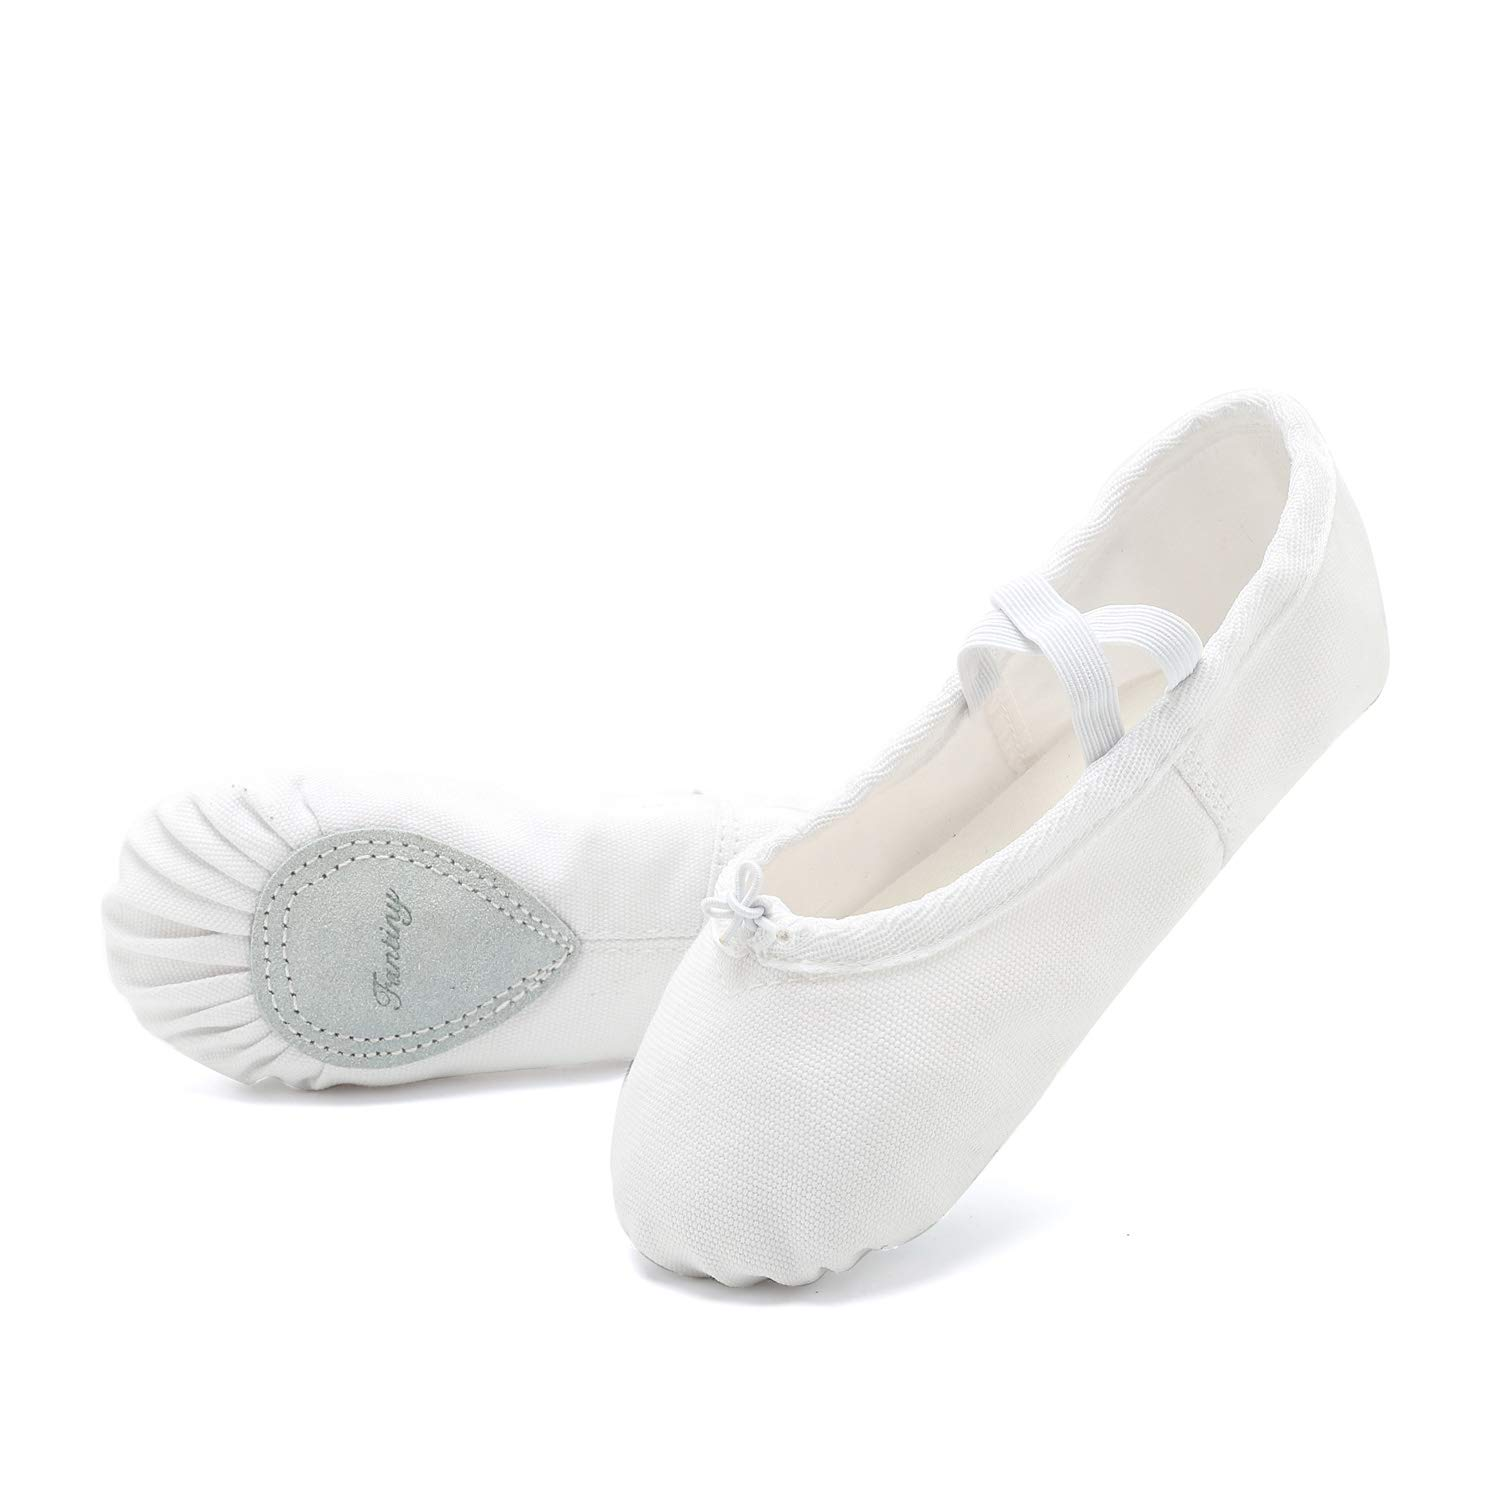 73df6debcae0d CIOR Ballet Slippers for Girls Classic Split-Sole Canvas Dance Gymnastics  Yoga Shoes Flats